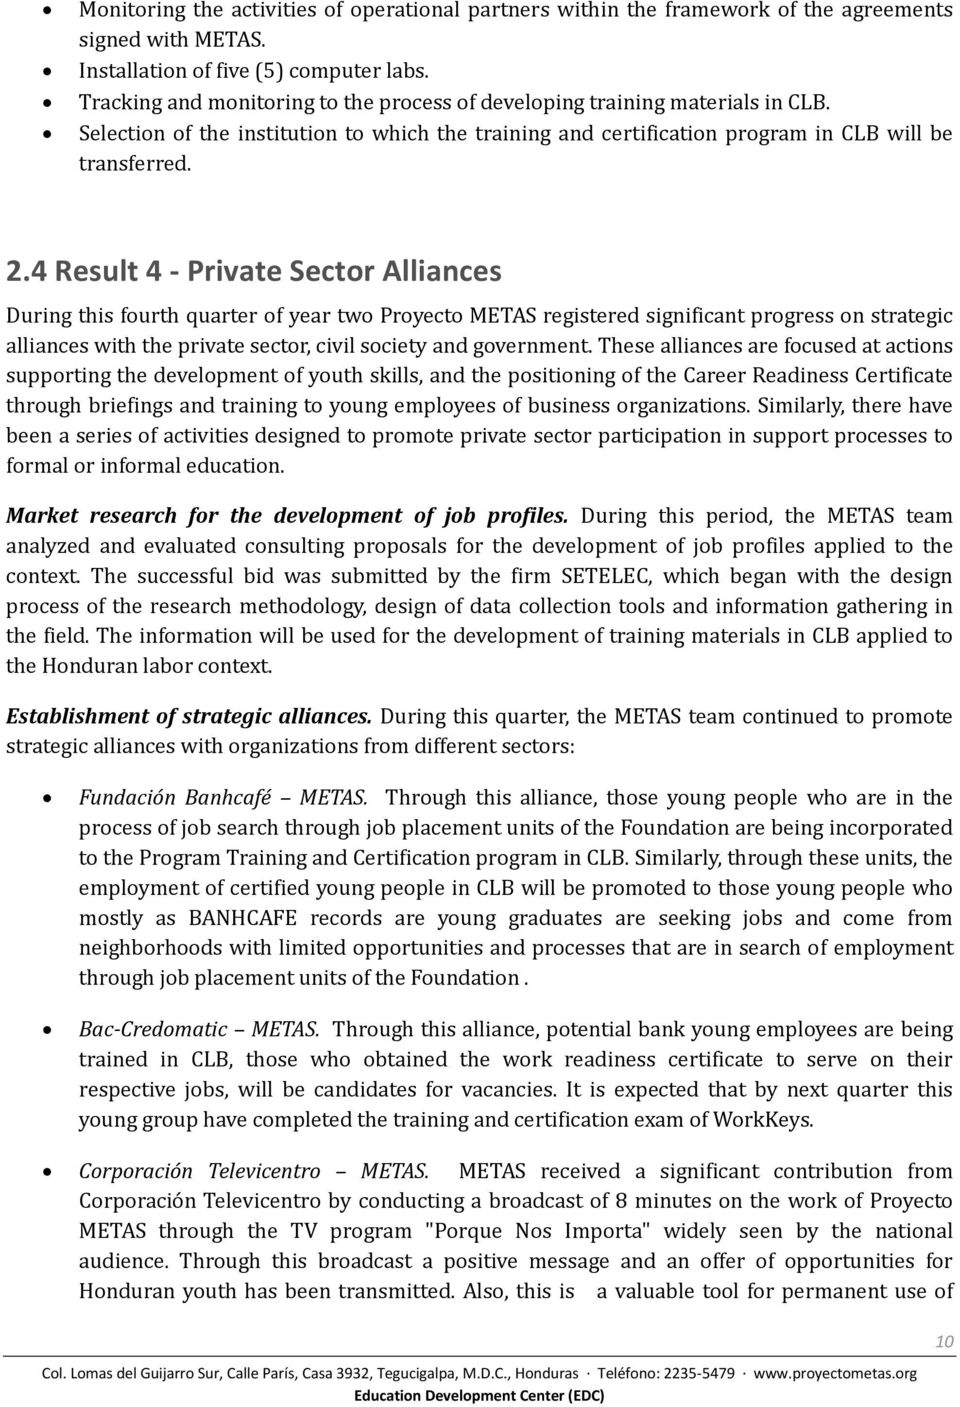 4 Result 4 - Private Sector Alliances During this fourth quarter of year two Proyecto METAS registered significant progress on strategic alliances with the private sector, civil society and